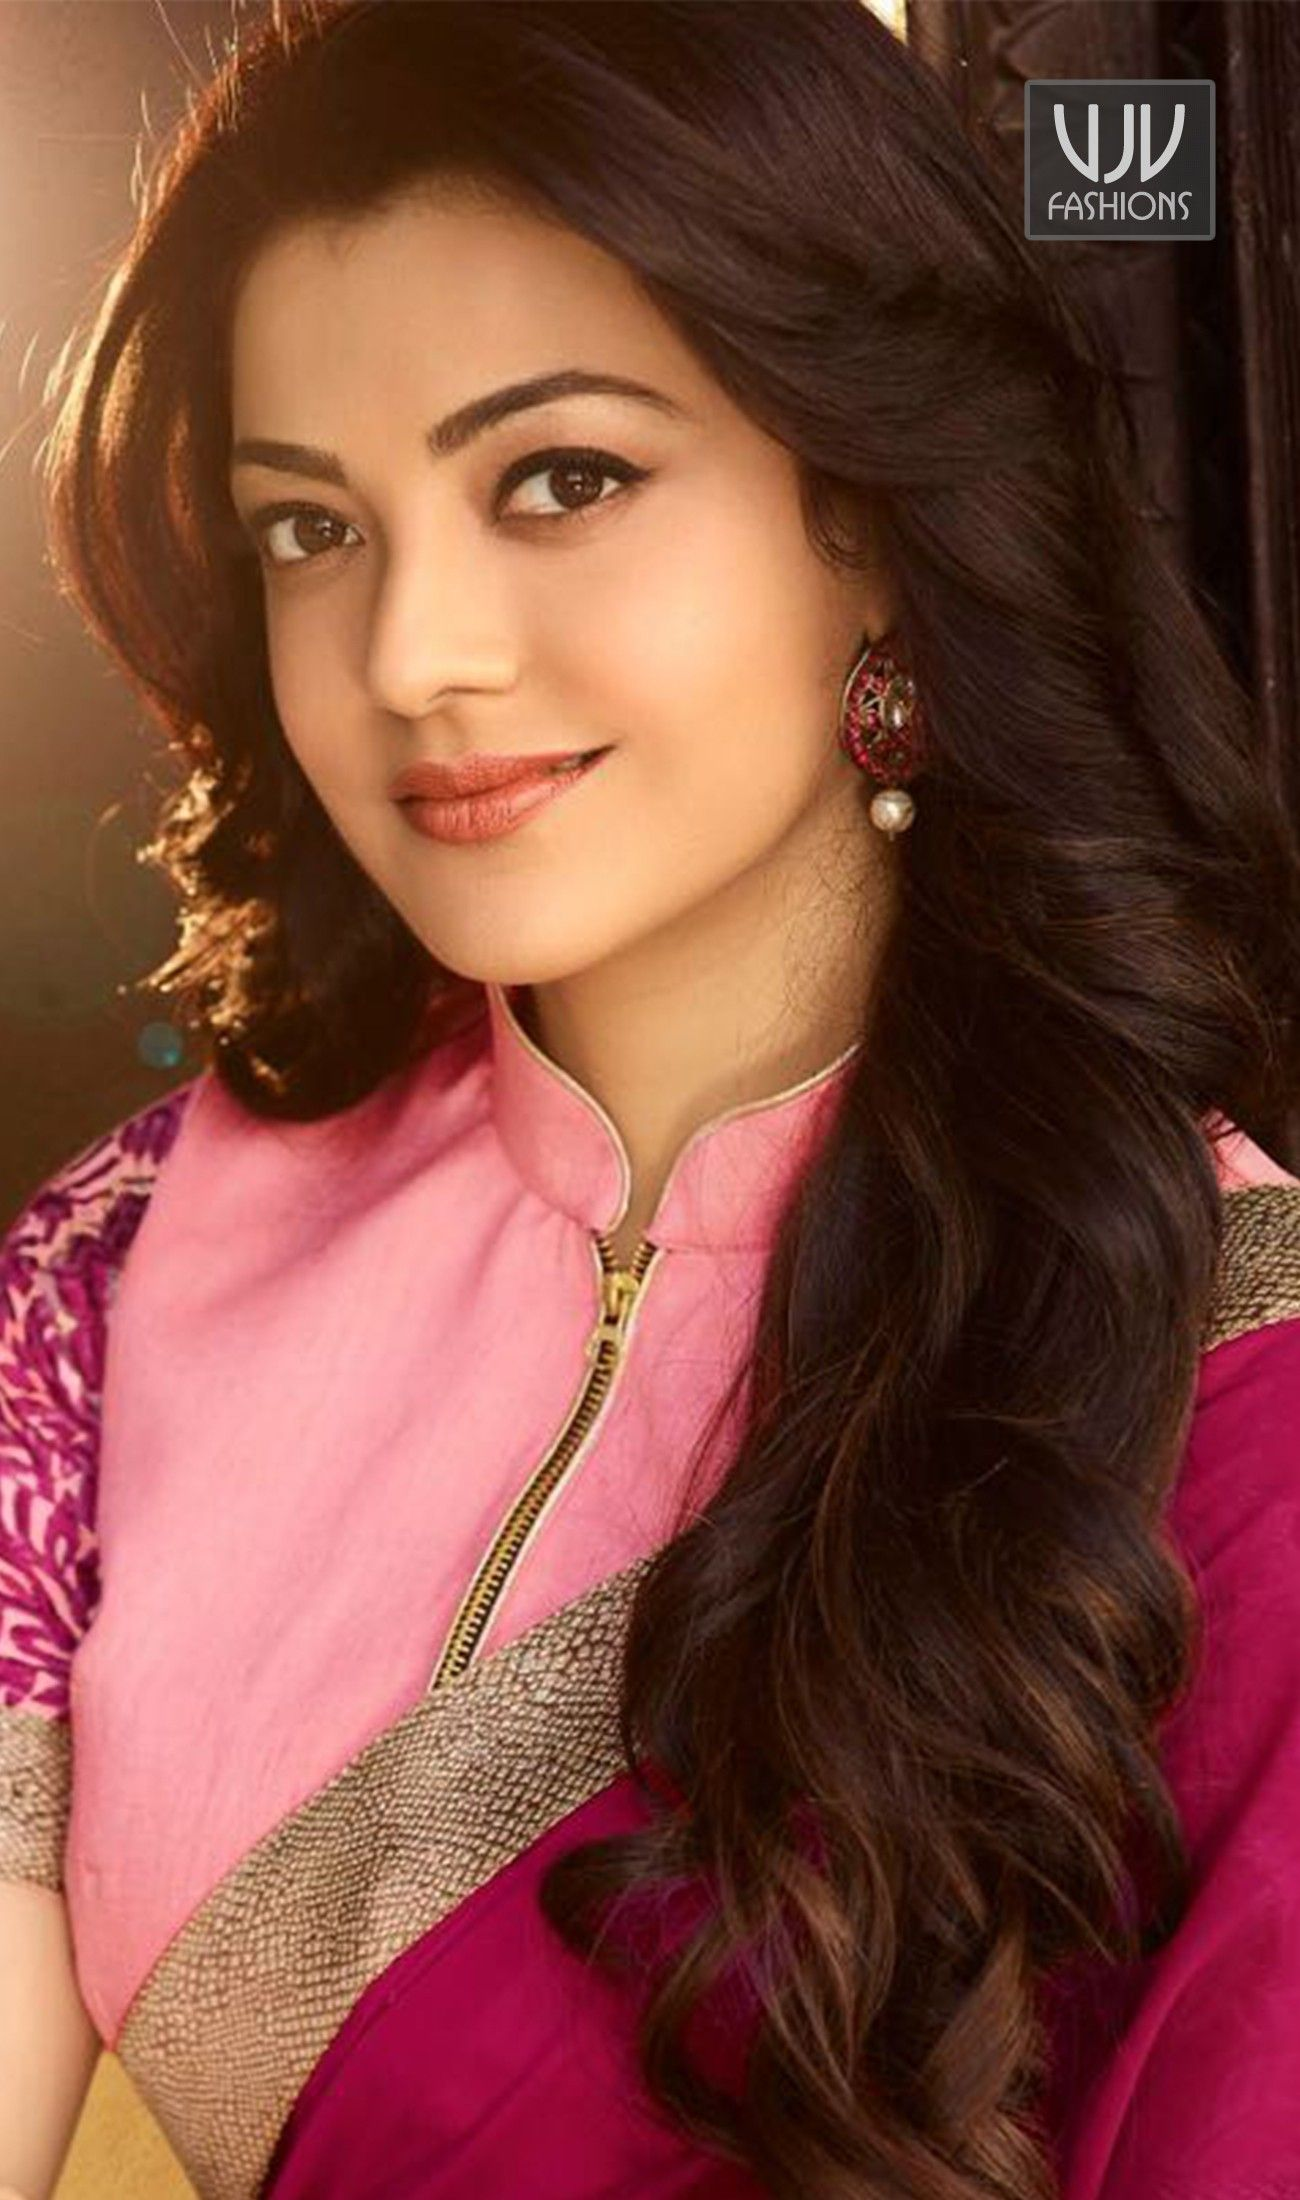 kajal aggarwal | india beauty | pinterest | actresses, india beauty